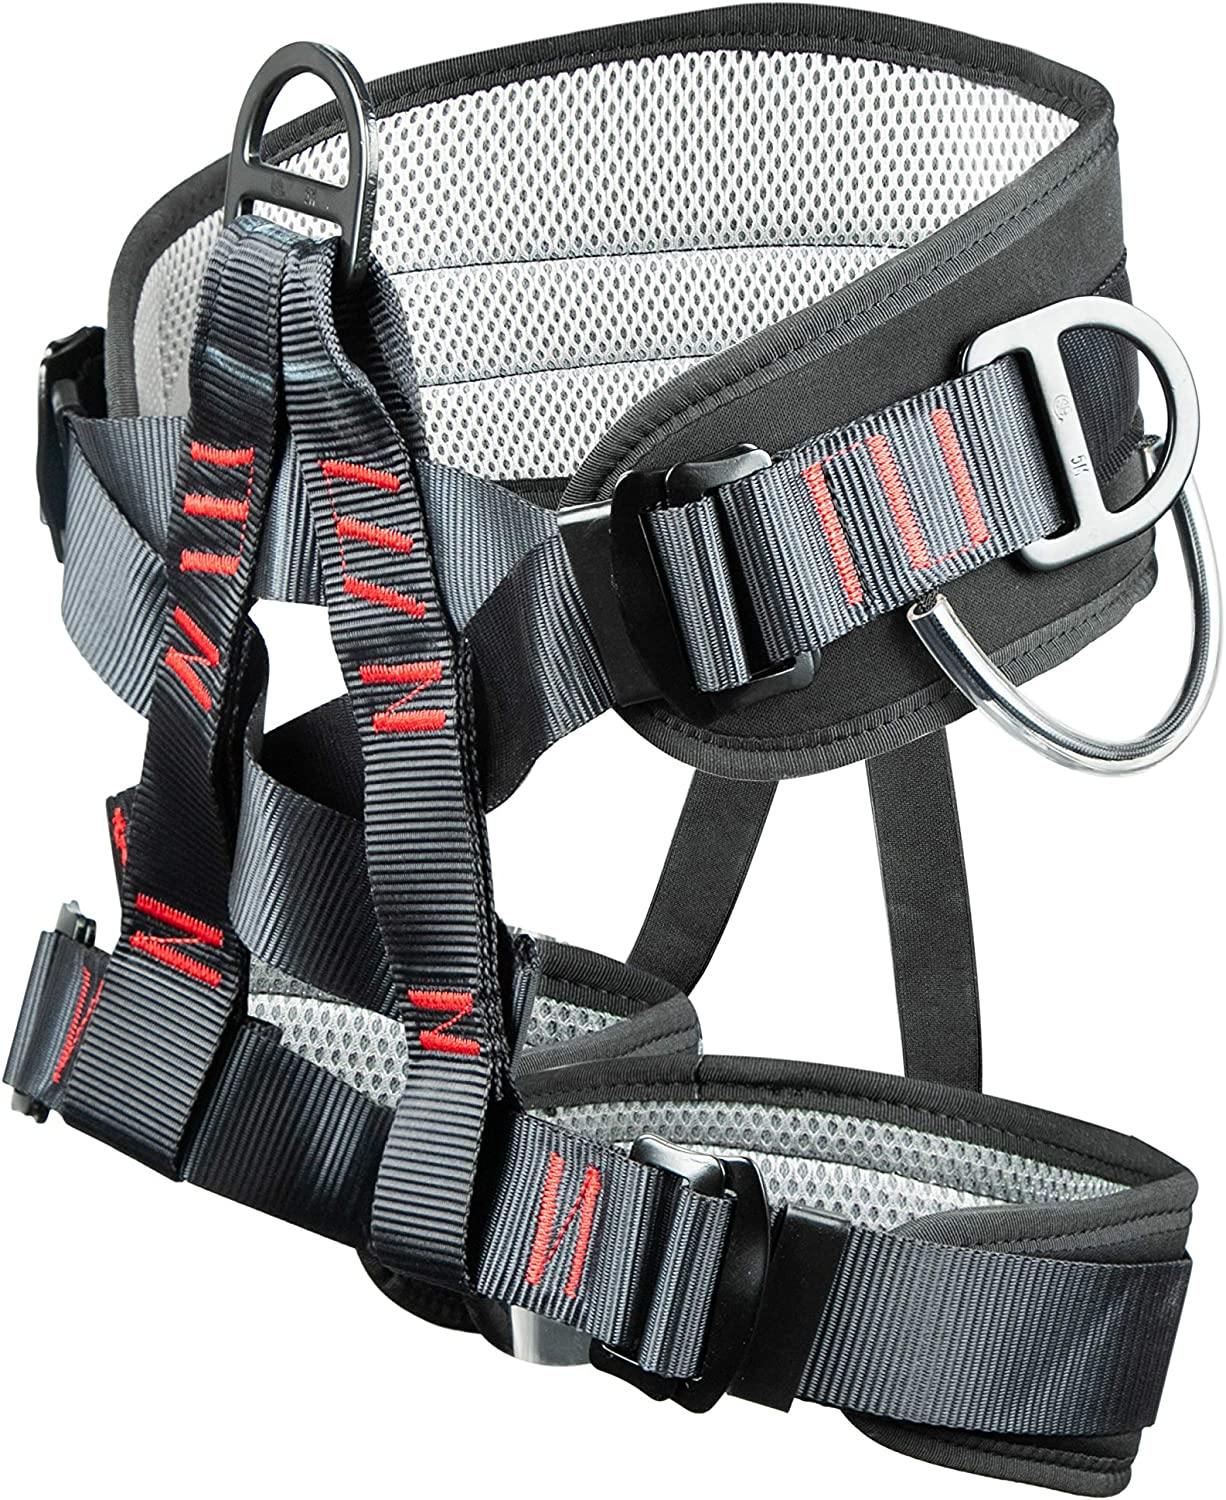 Eleven Guns Adjustable Thickness Climbing Harness Half Body Harnesses for Fire Rescuing Caving Rock Climbing Rappelling Tree Protect Waist Safety Belts (Black)